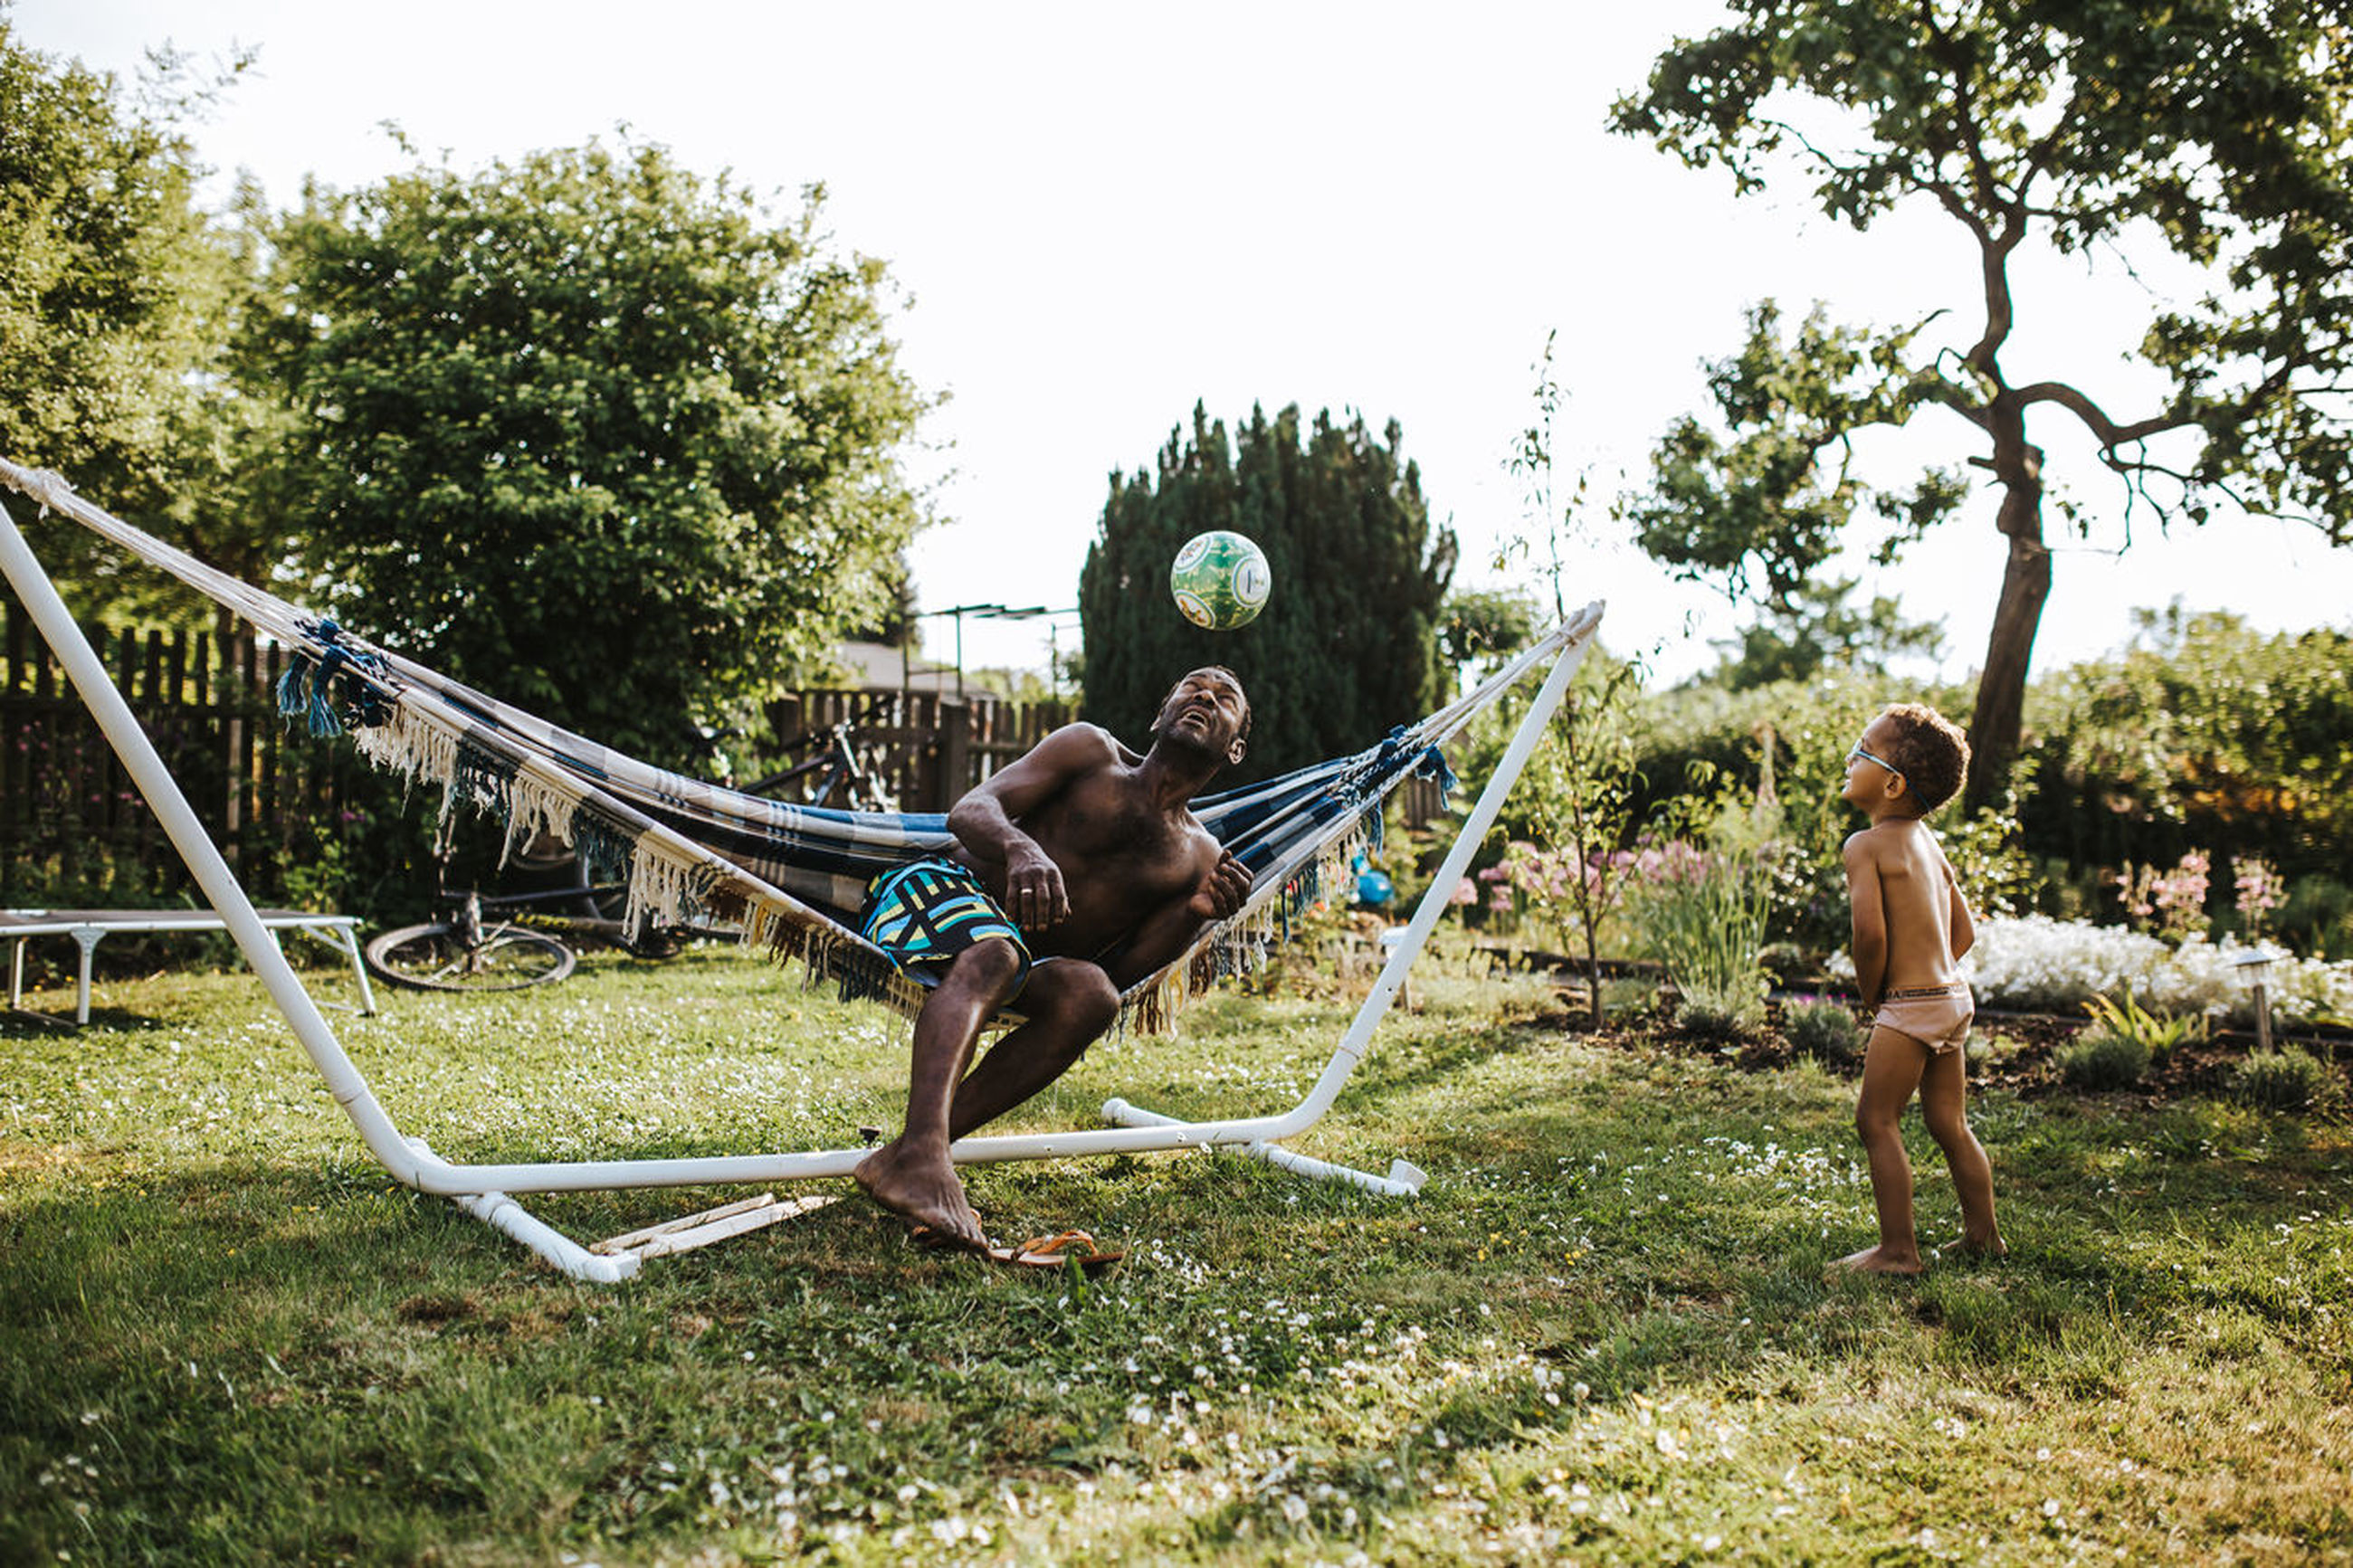 plant, real people, leisure activity, tree, full length, men, lifestyles, males, grass, playing, day, boys, nature, emotion, people, enjoyment, child, casual clothing, group of people, fun, outdoors, positive emotion